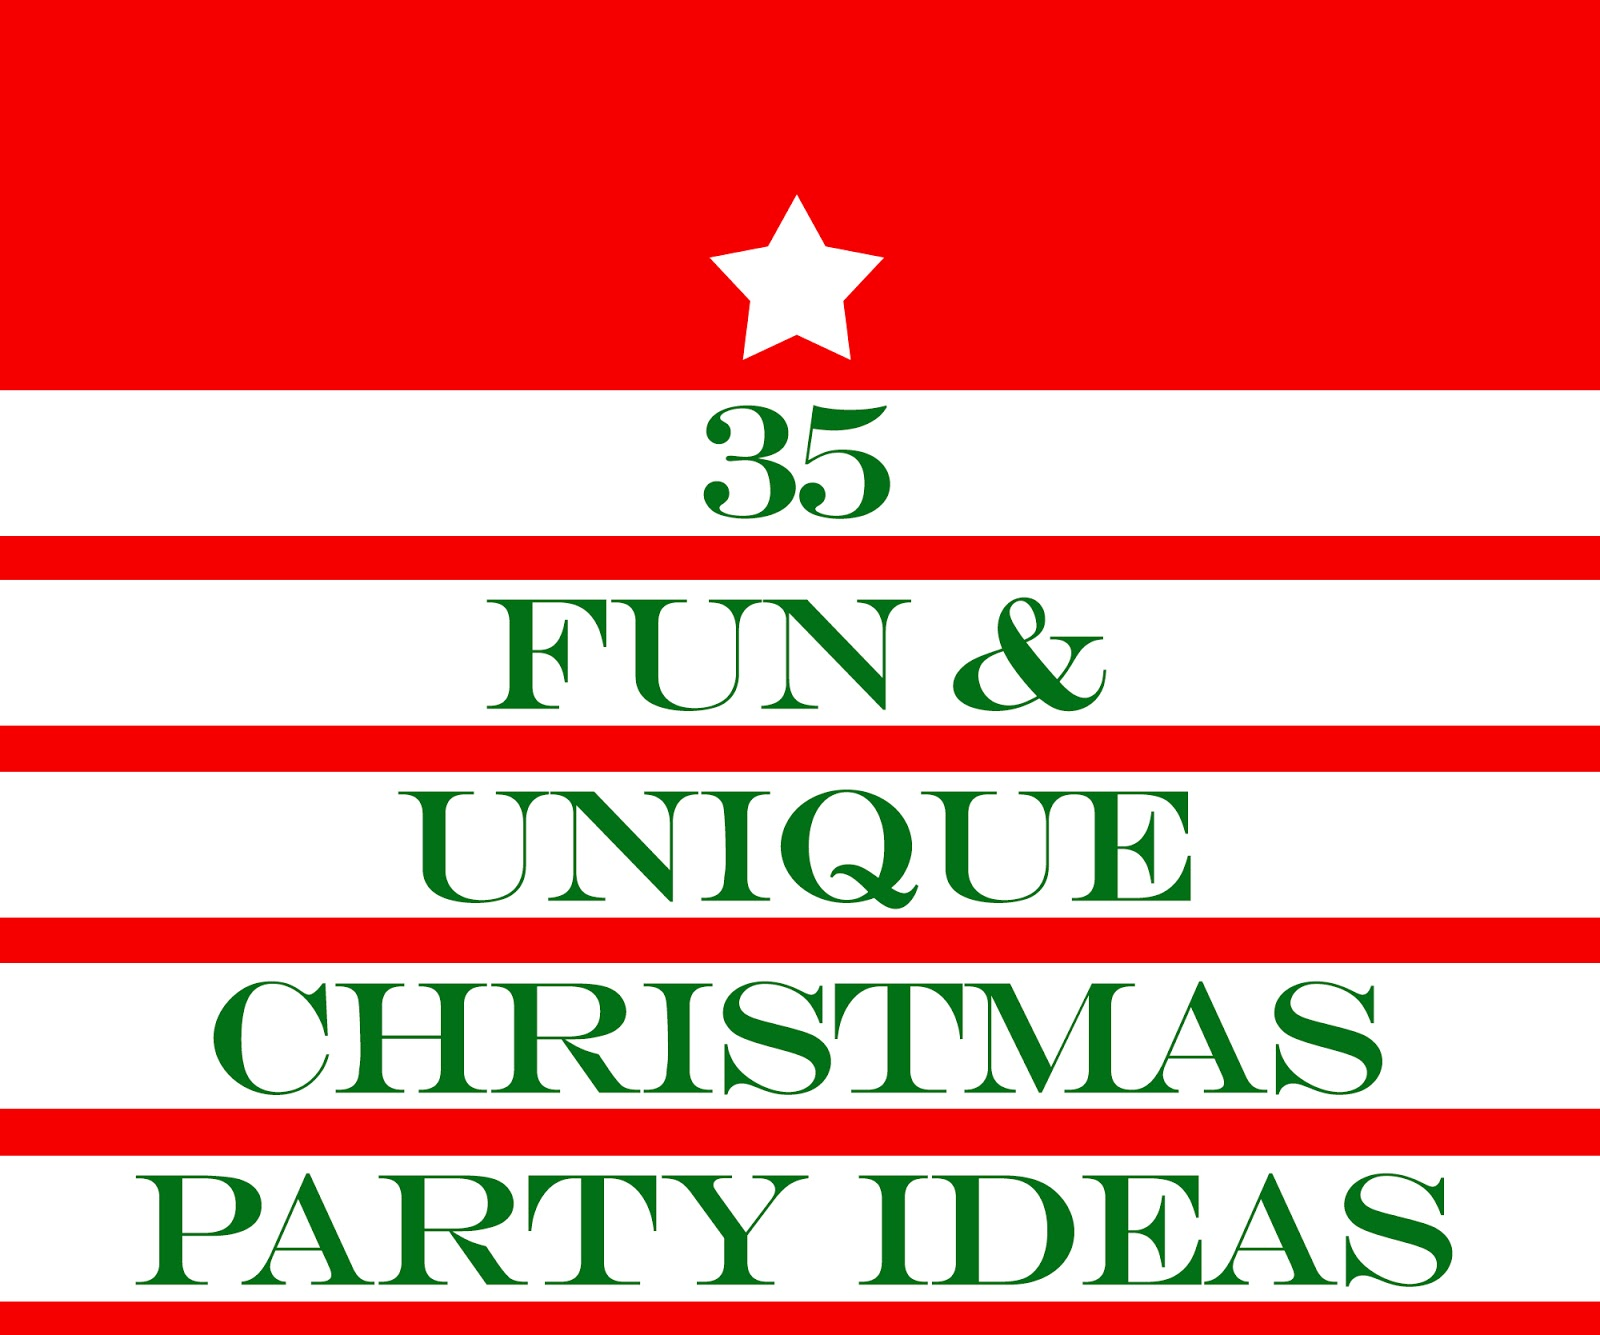 Uncategorized Ideas For Christmas Party Themes 35 fun christmas party ideas themes